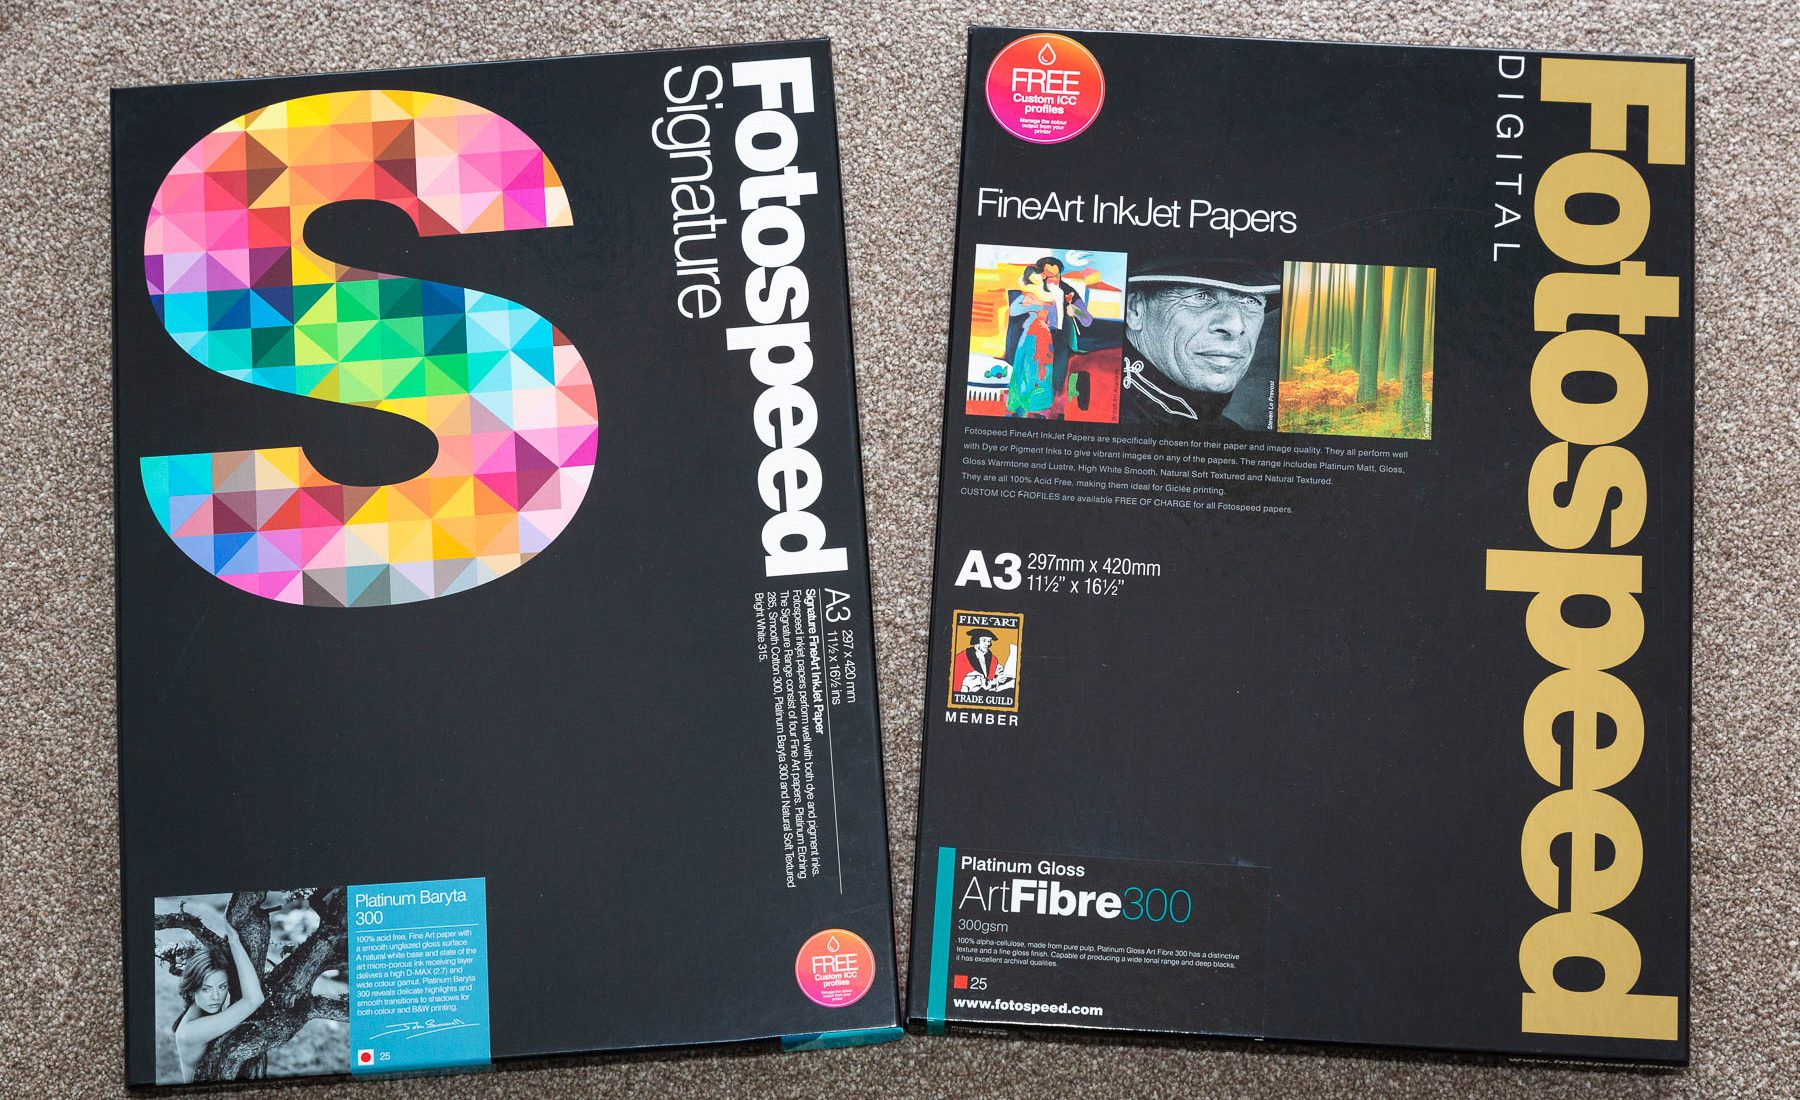 Fotospeed Fine Art Inkjet Paper Review